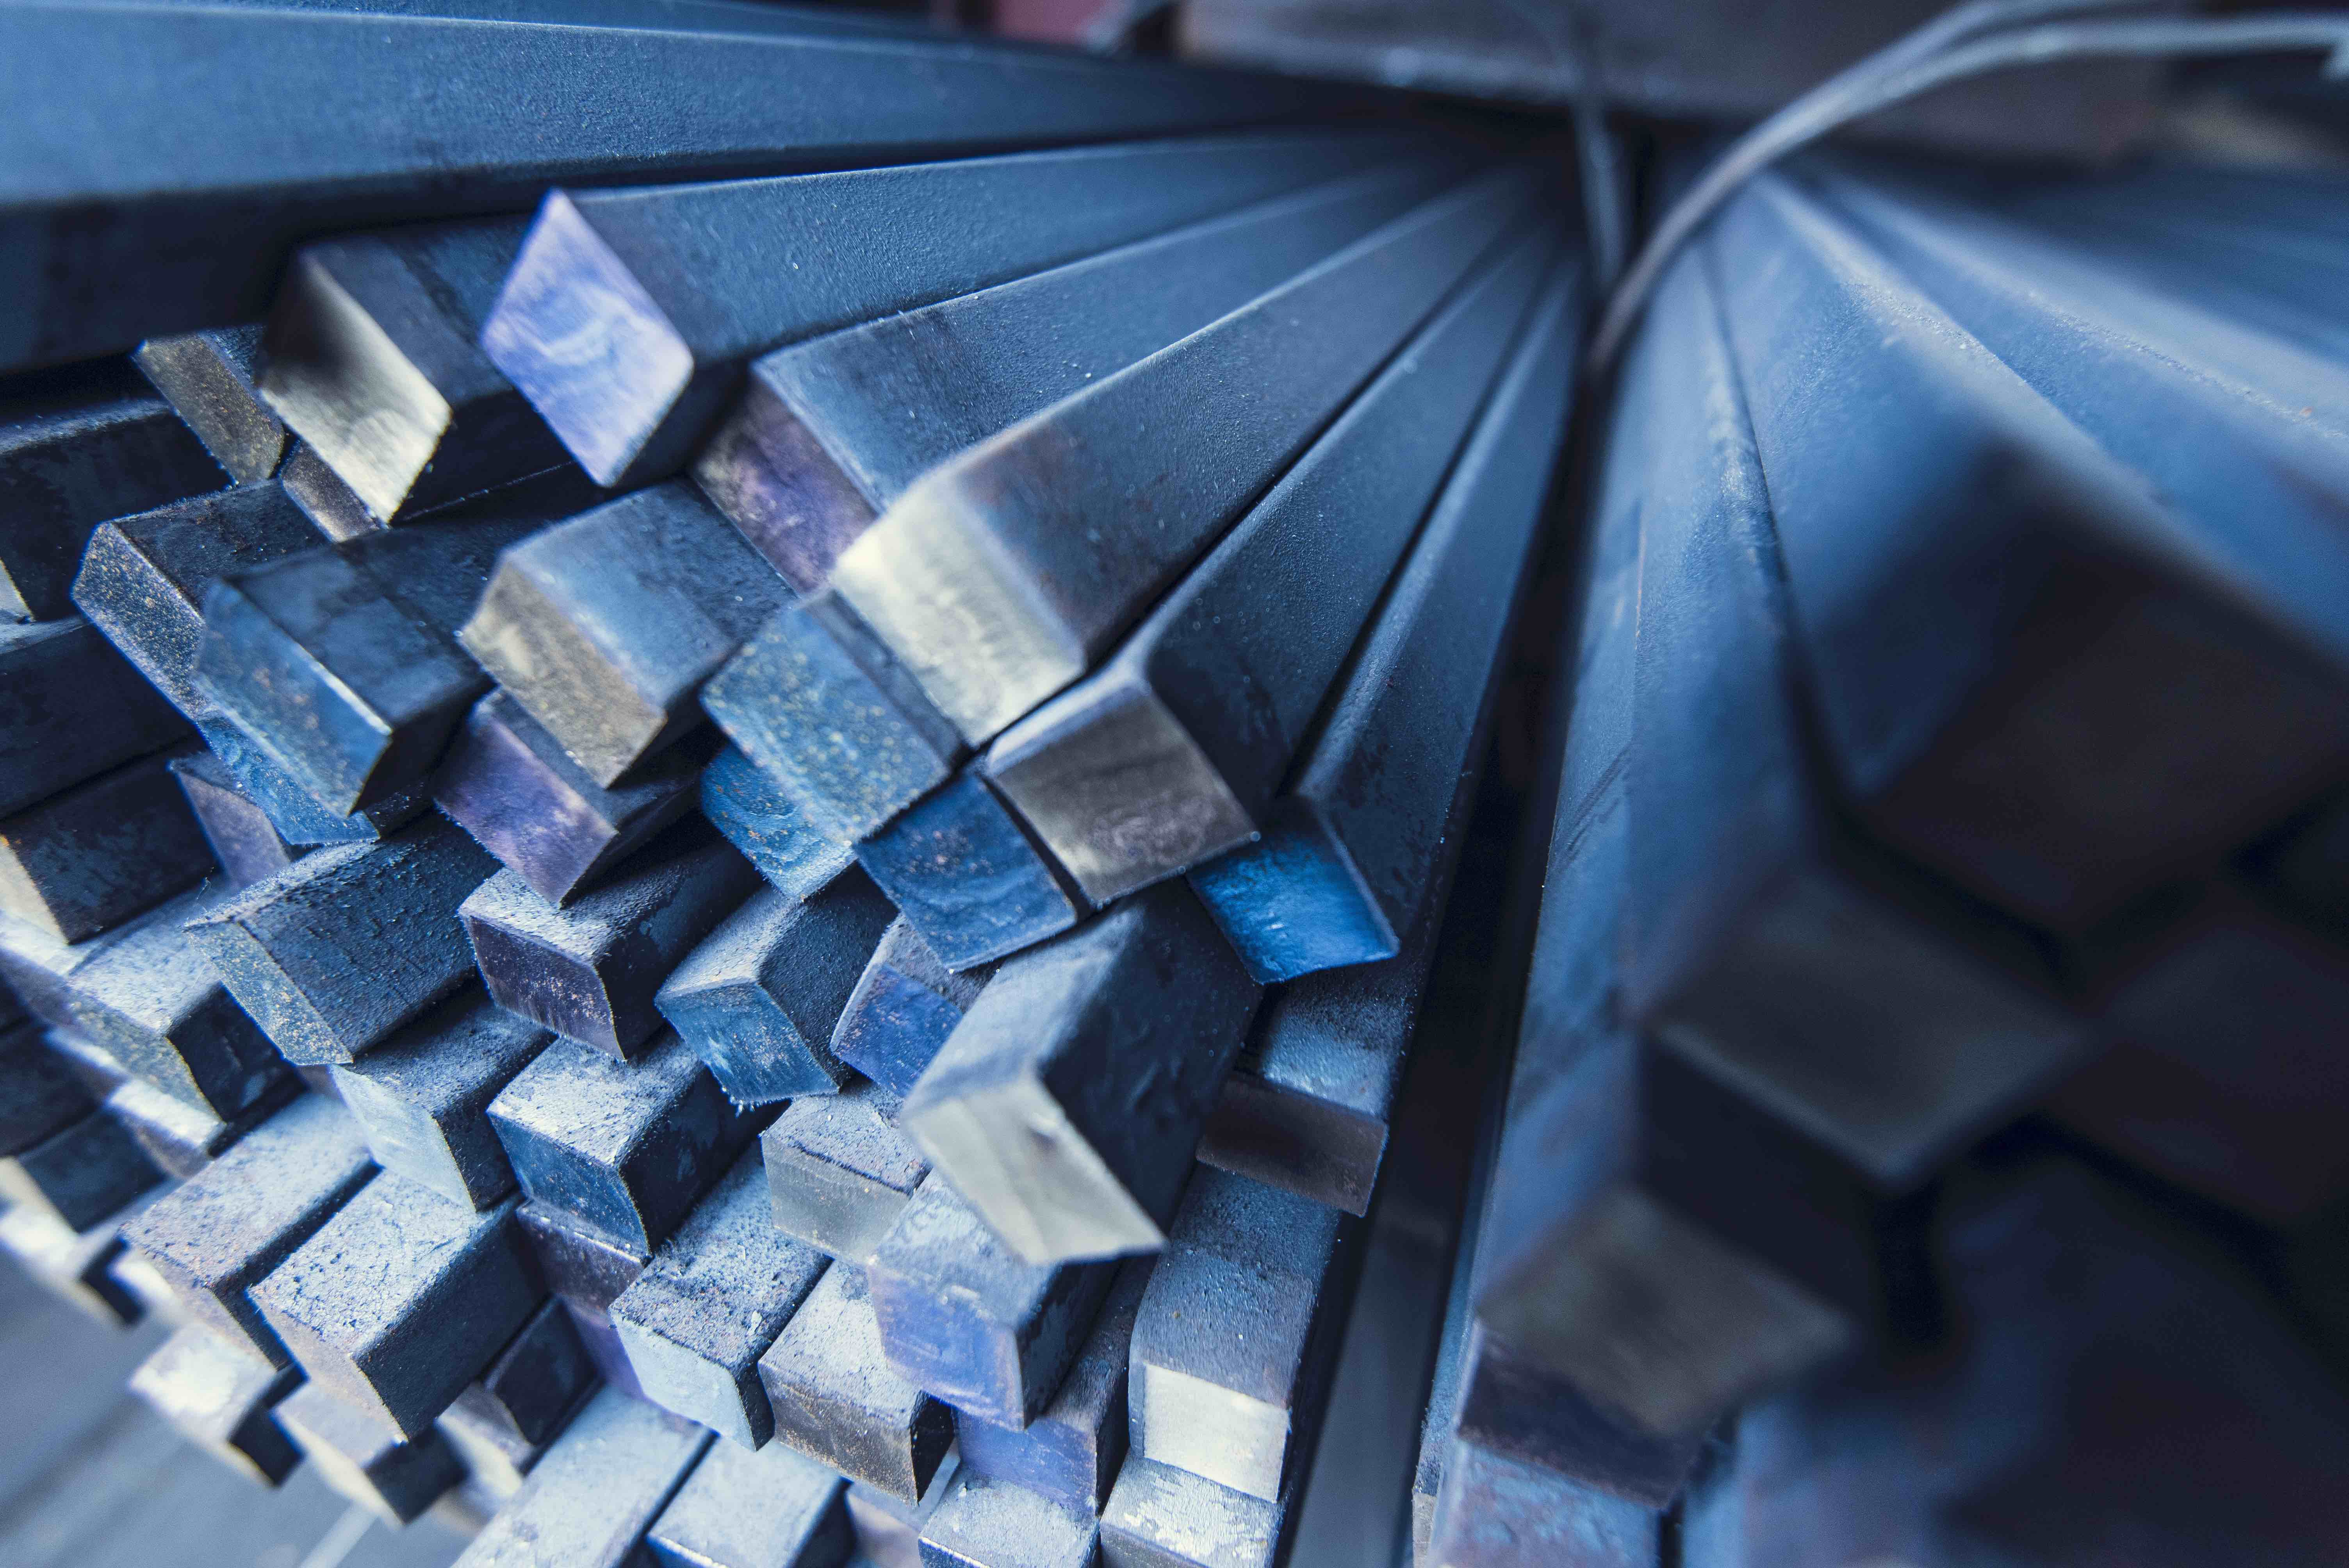 Onlinemetals.com is an E-commerce site that sells production components and parts in various metals, including steel, aluminum and copper.